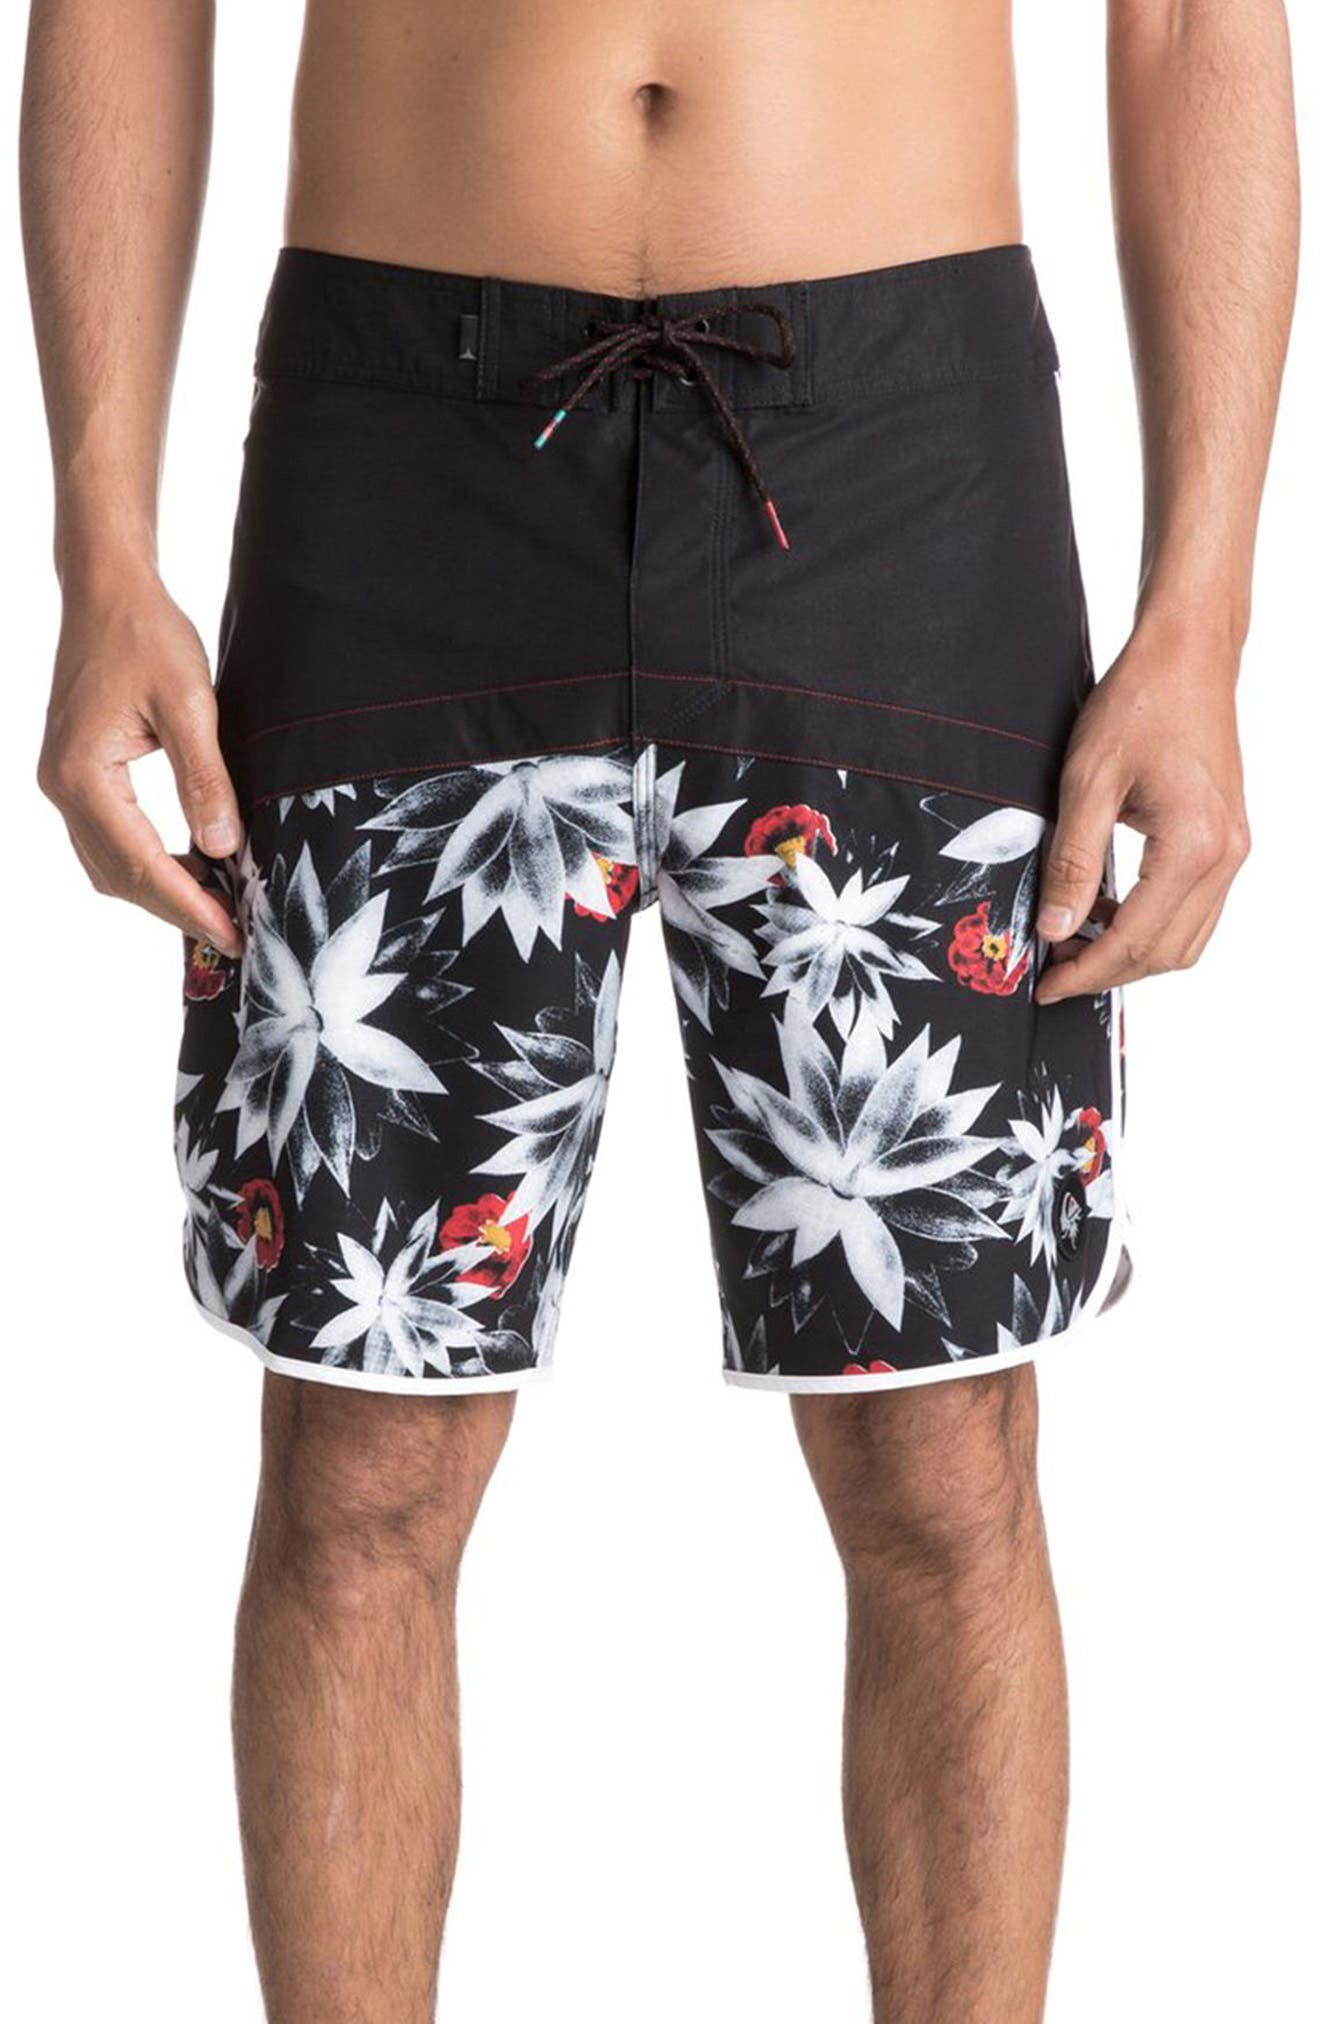 Crypt Scallop Board Shorts,                             Main thumbnail 1, color,                             002